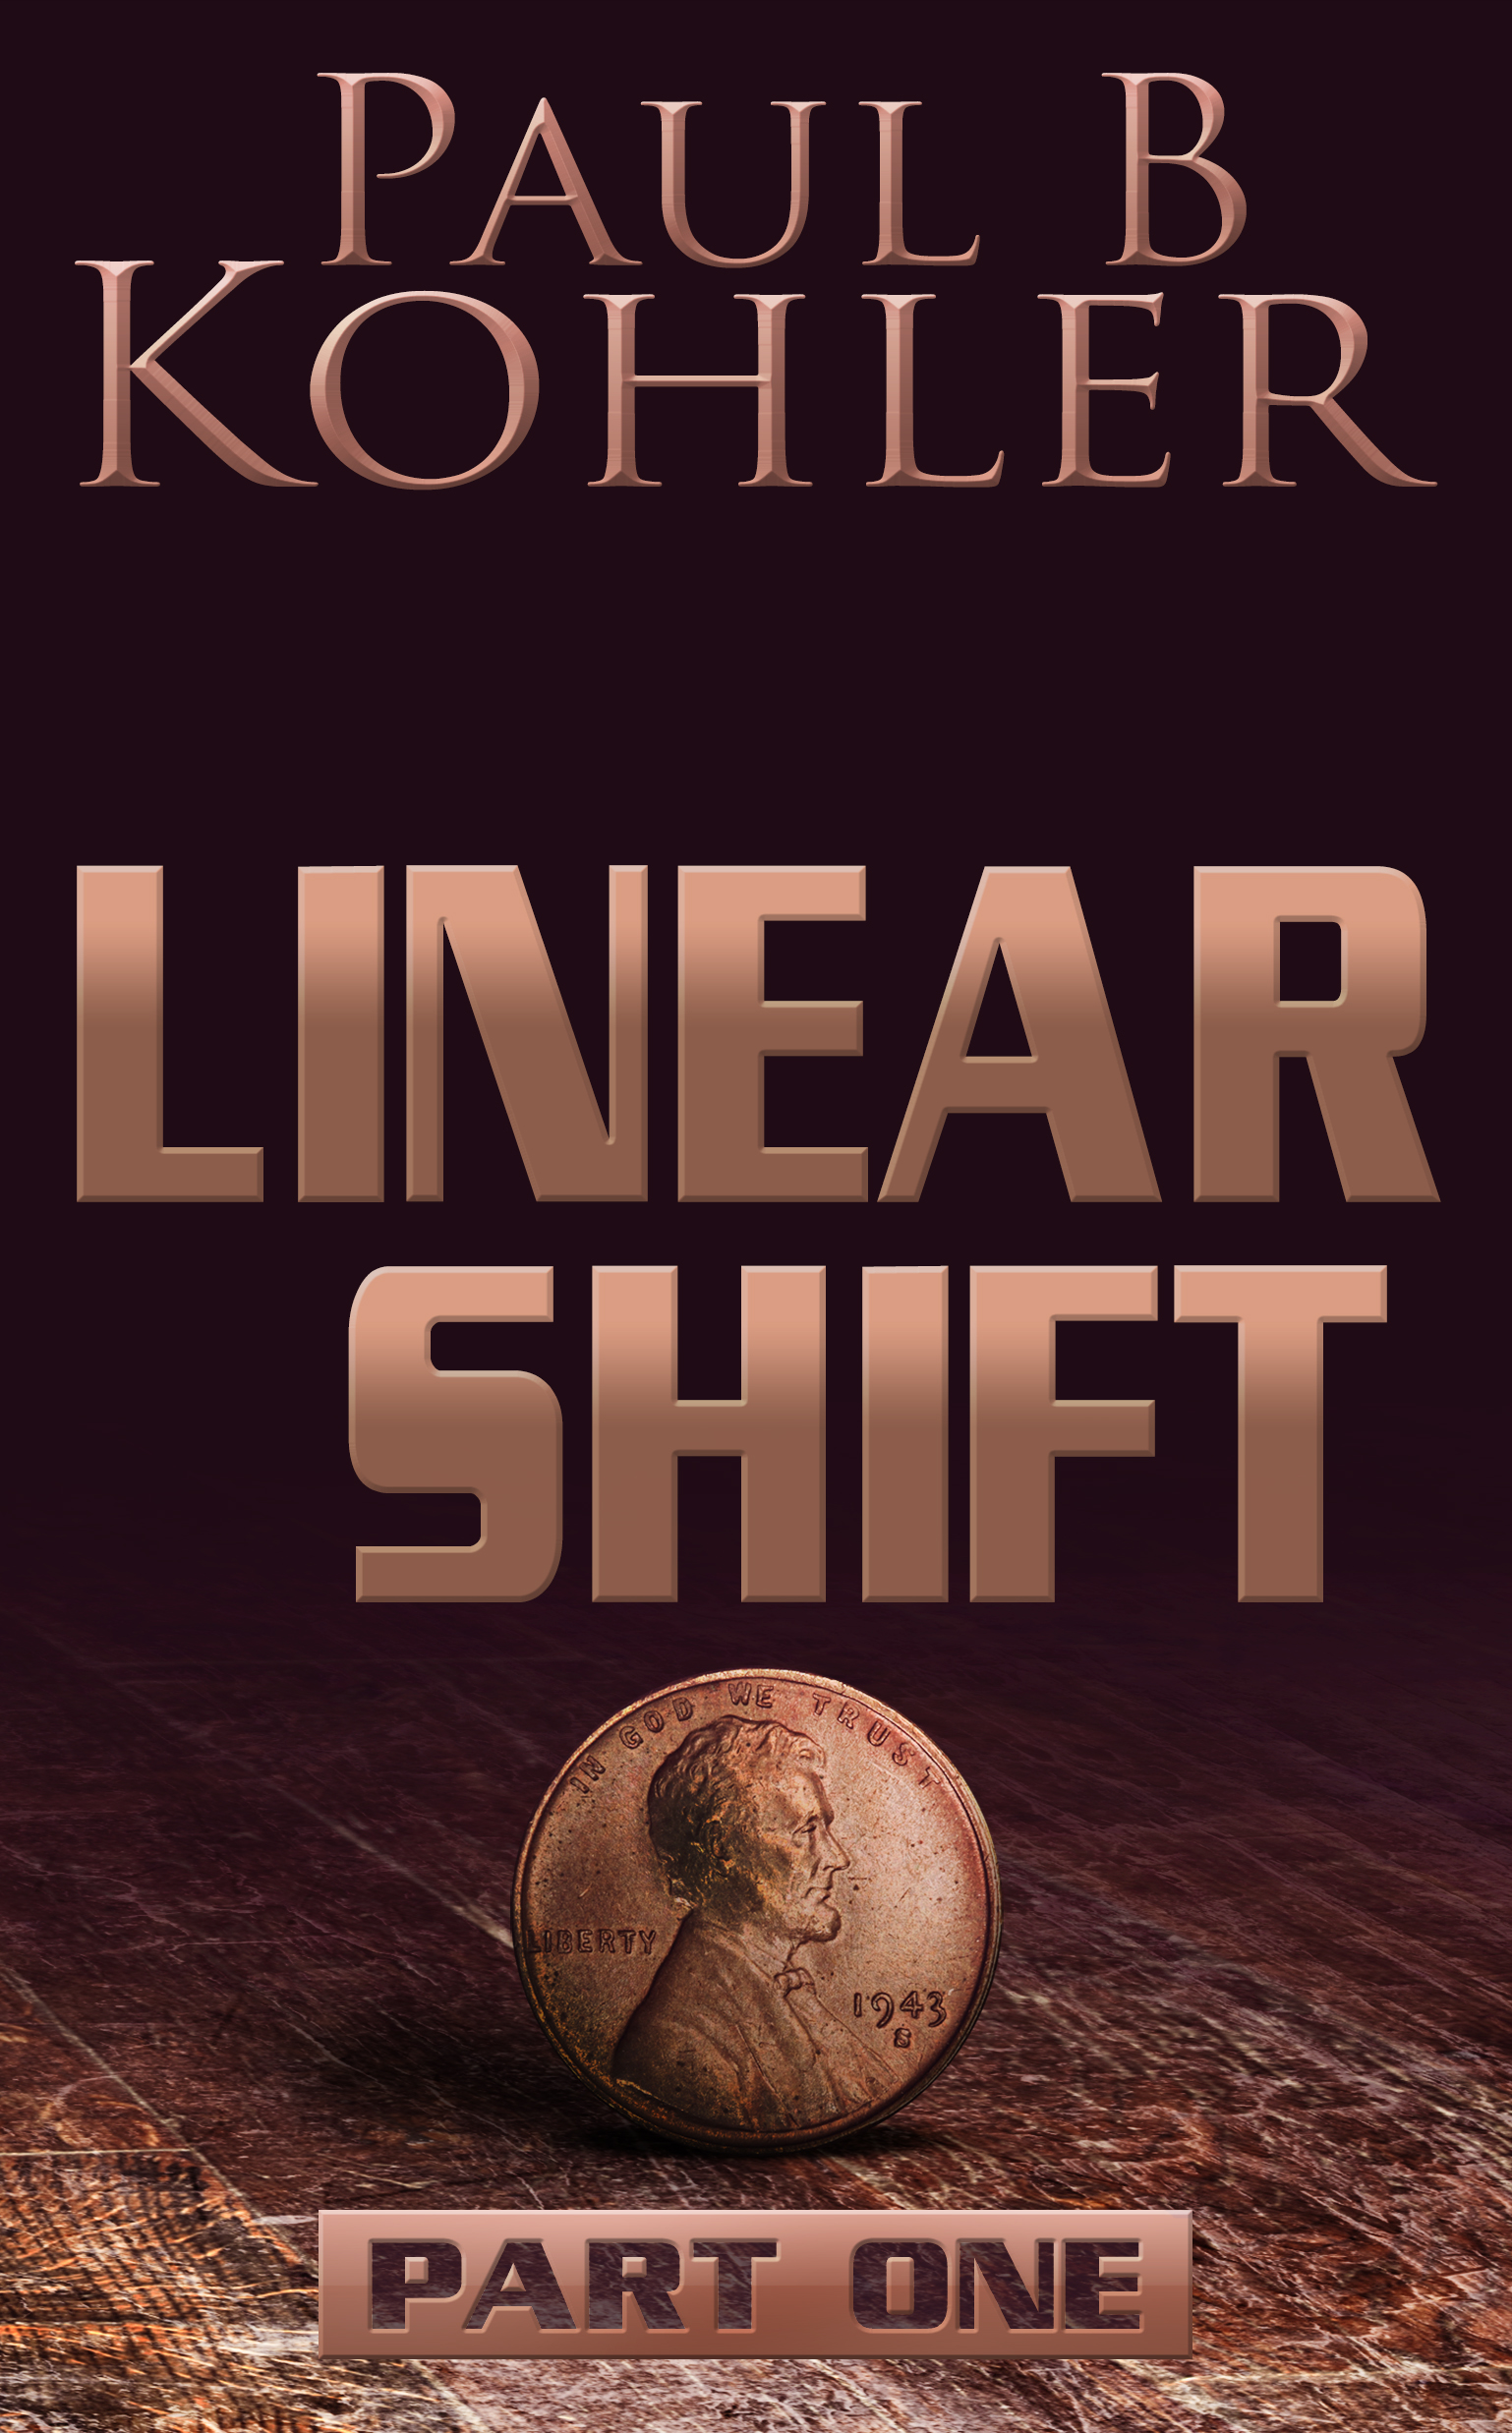 Linear Shift, time travel, peter cooper, paul b kohler, sci-fi